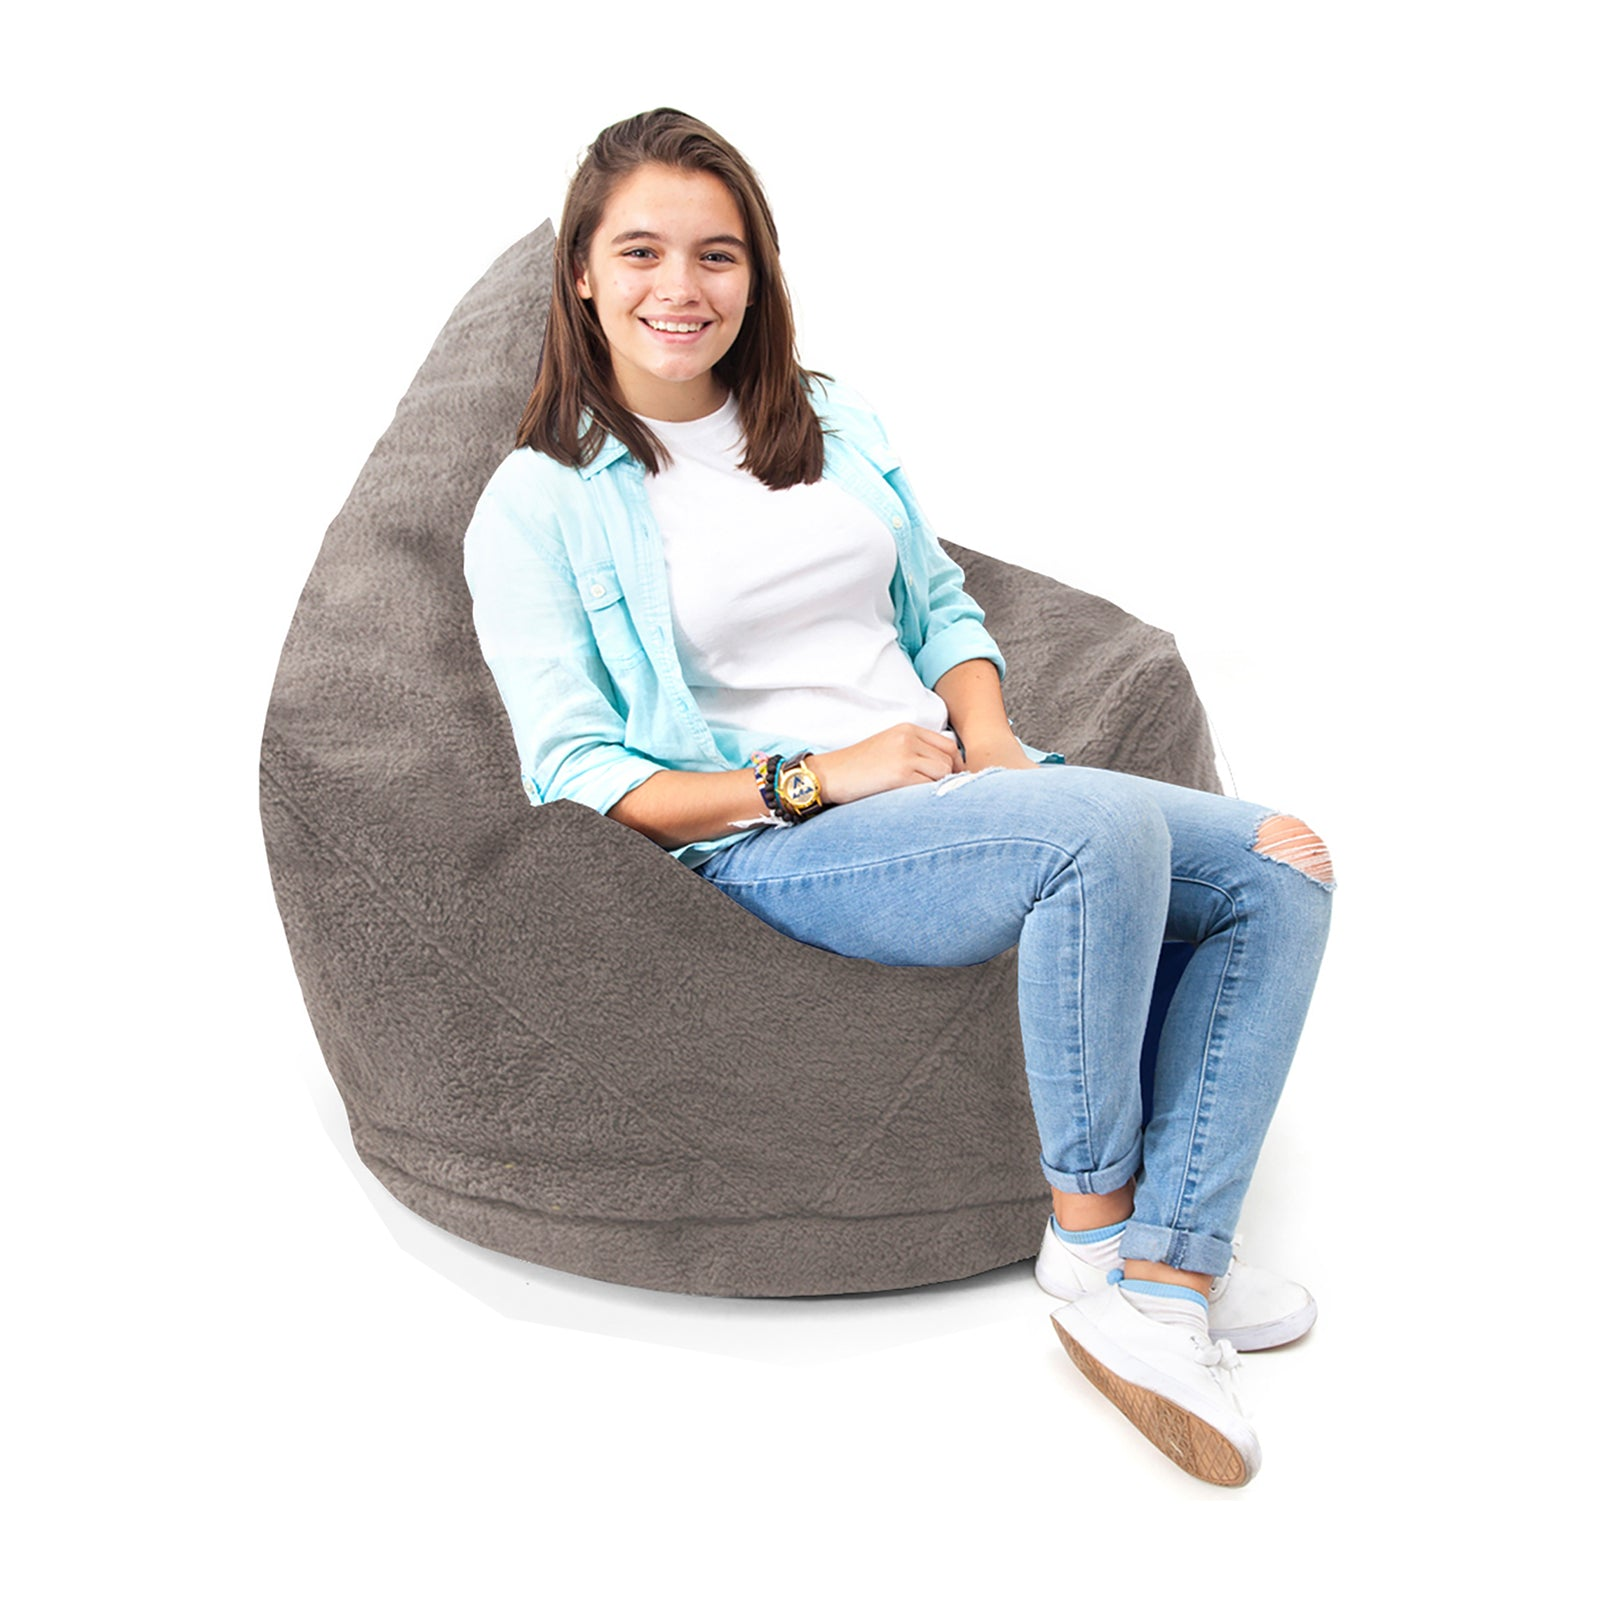 Storage Lounger - [product_title} with Zipper - mimish, inc.